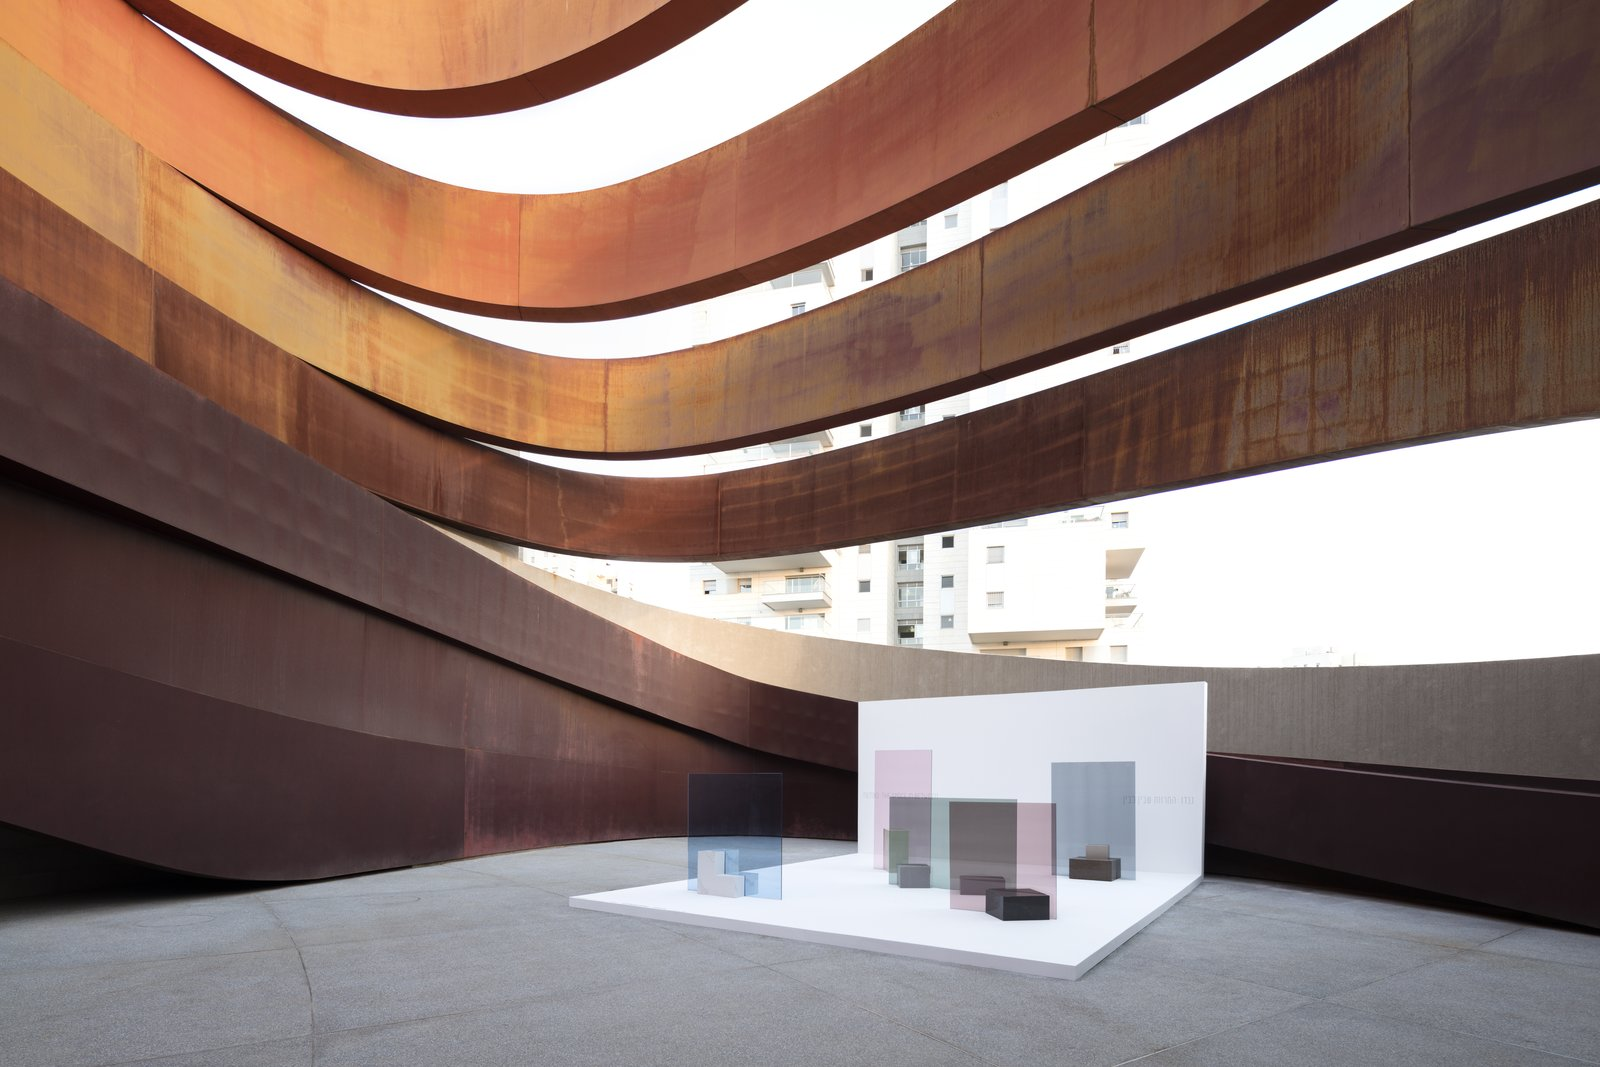 Photo 1 of 8 in Nendo's Minimalism Meets Ron Arad's Sweeping Curves